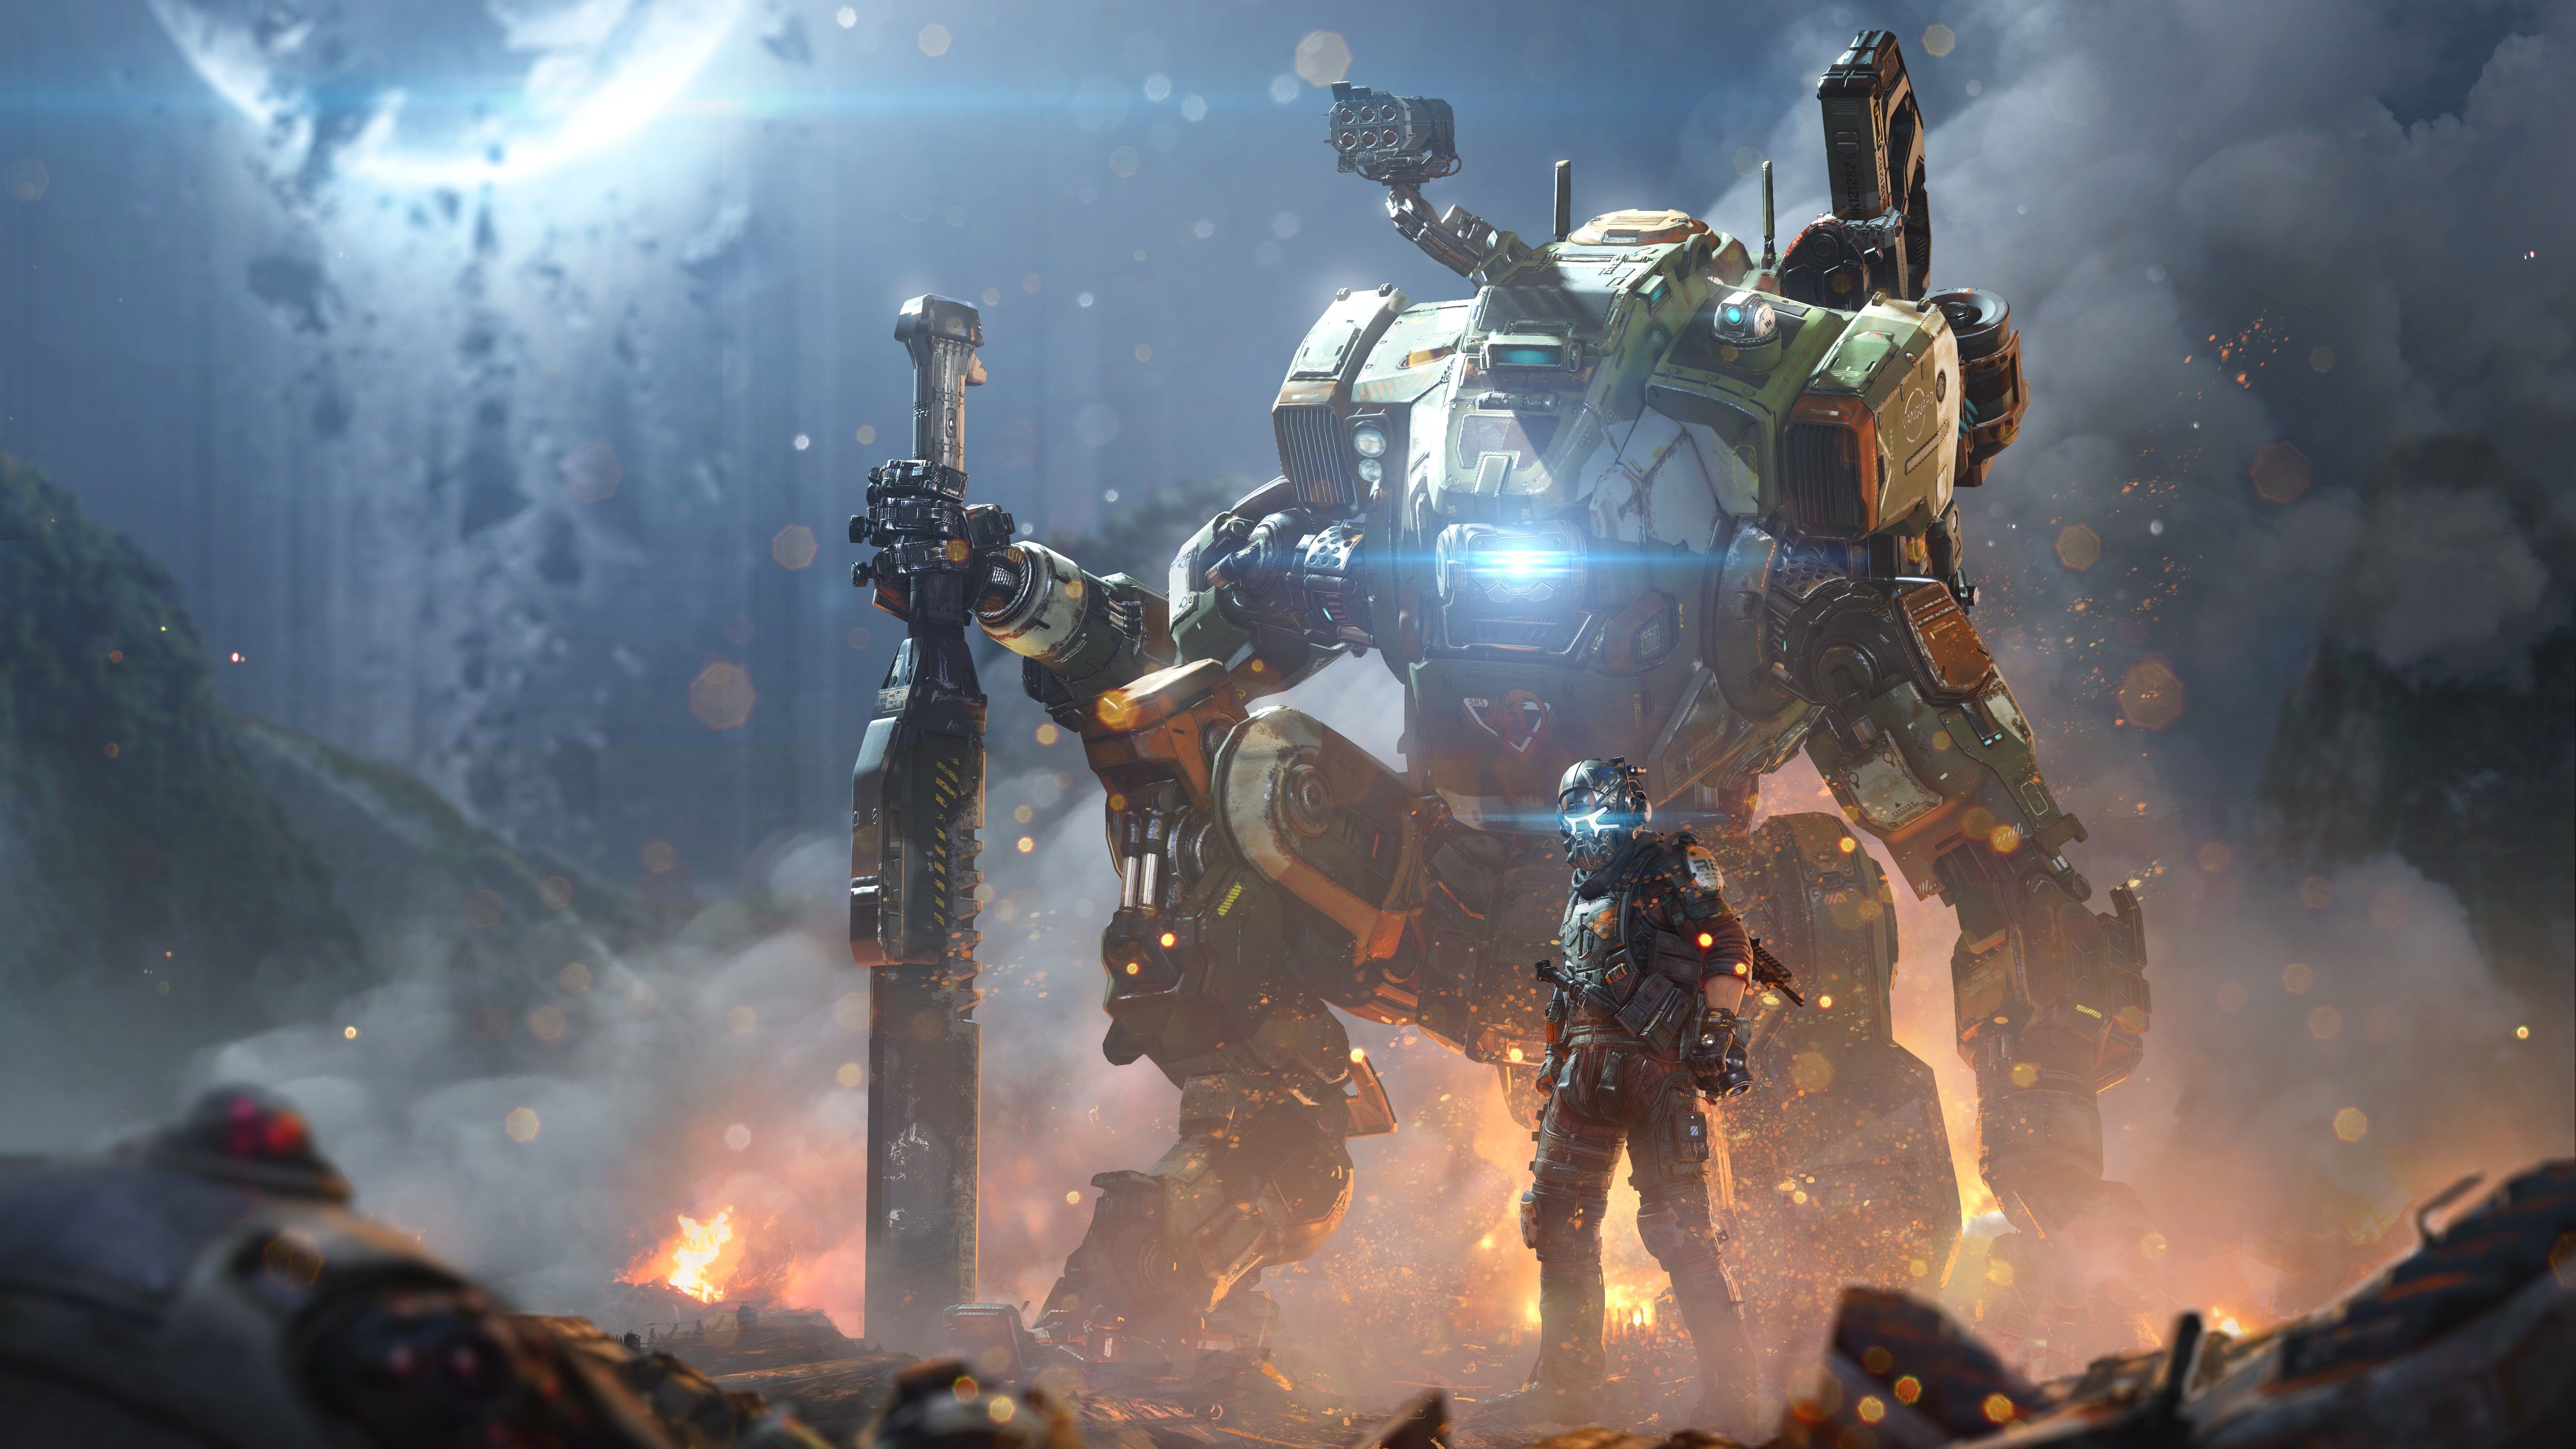 Titanfall 2 Wallpapers Top Free Titanfall 2 Backgrounds Wallpaperaccess